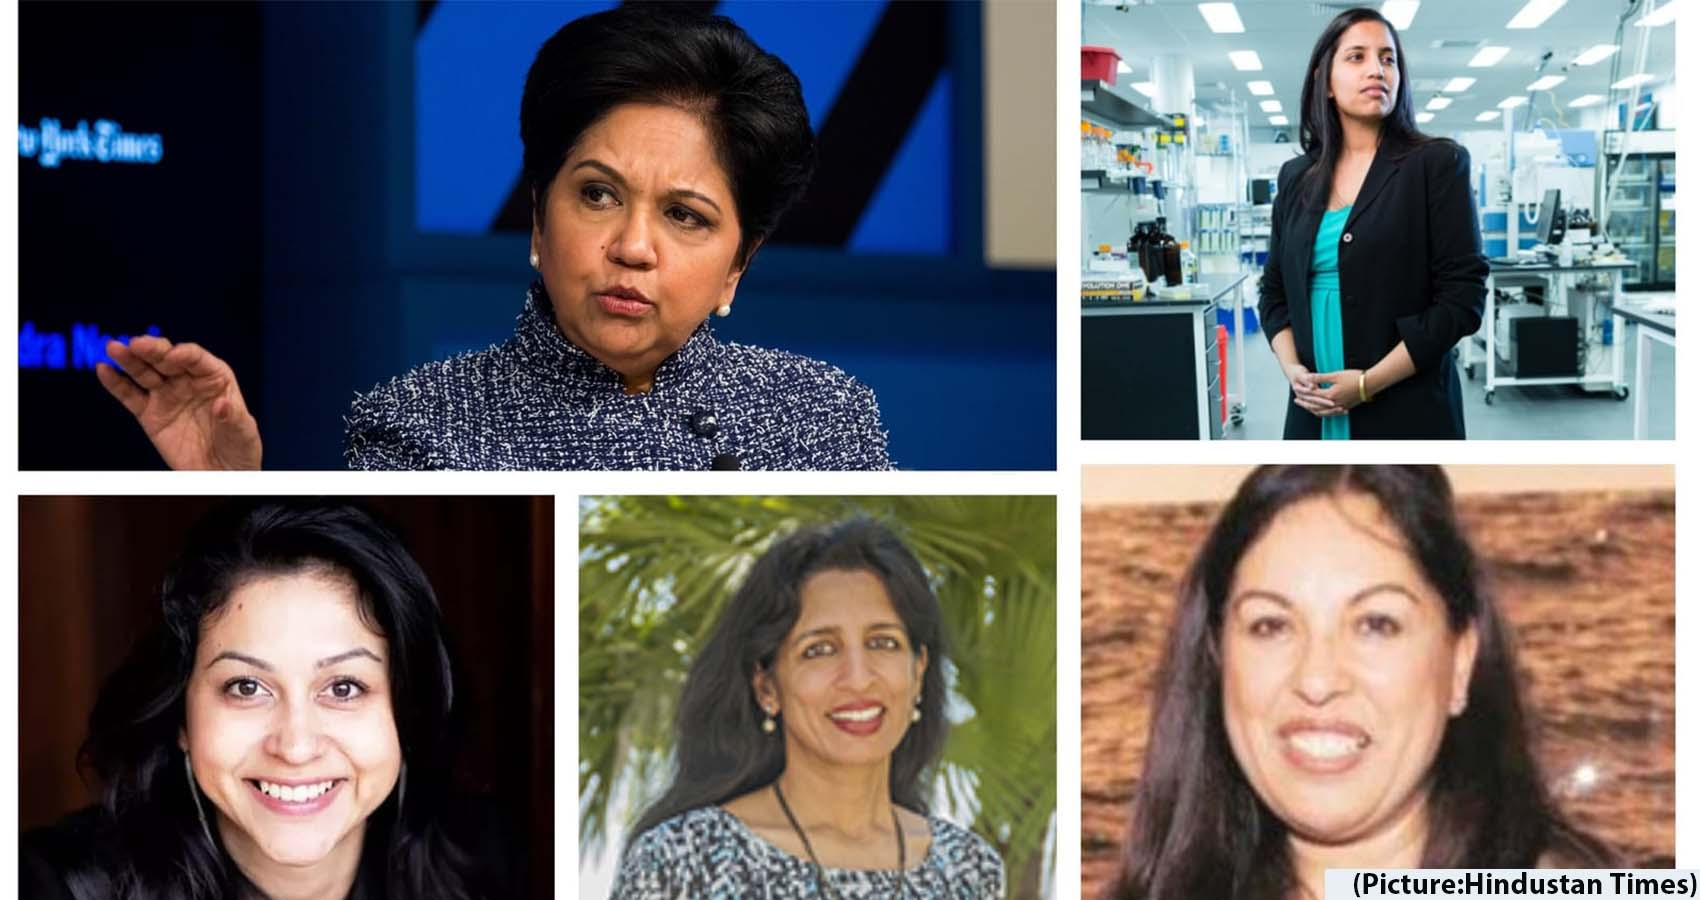 Forbes' 2021 List Of America's Richest Self-Made Women Has 5 Of Indian Origin